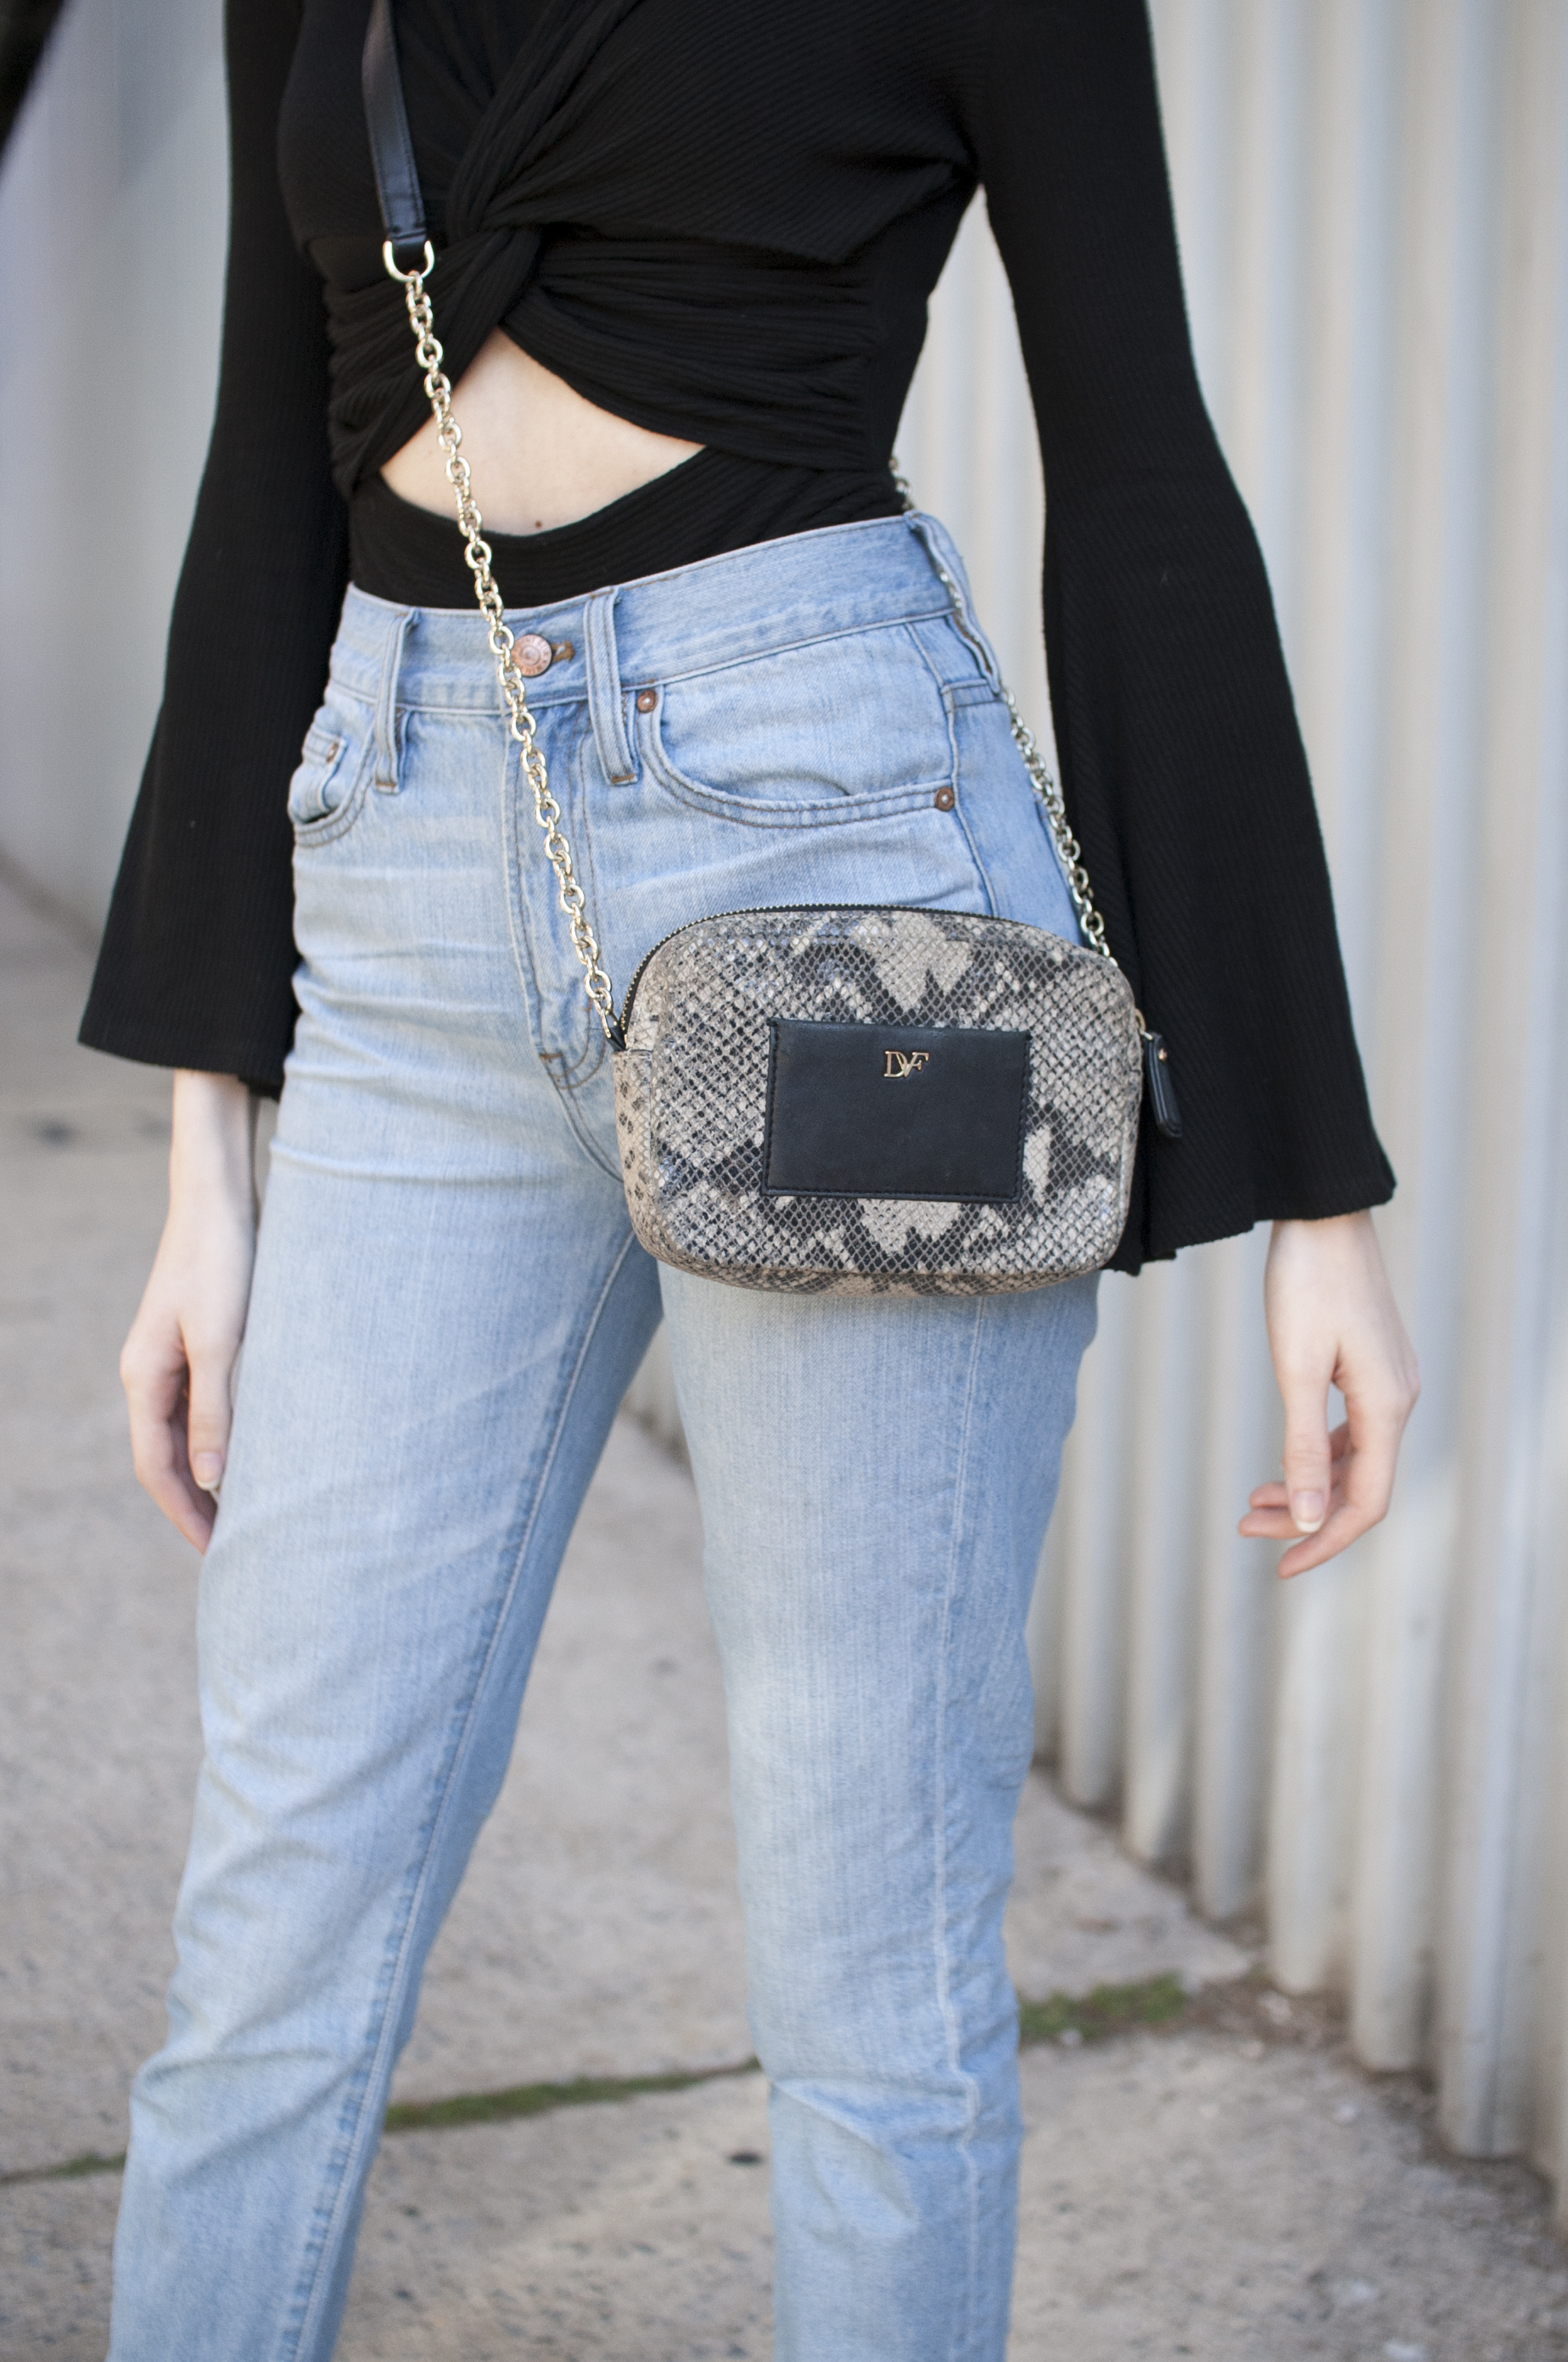 mom jeans outfit, boyfriend jeans outfit, cushnie et ochs, bell sleeve top, block heel mules, heeled mule sandals, cat eye sunglasses, white sunglasses, summer outfit inspiration